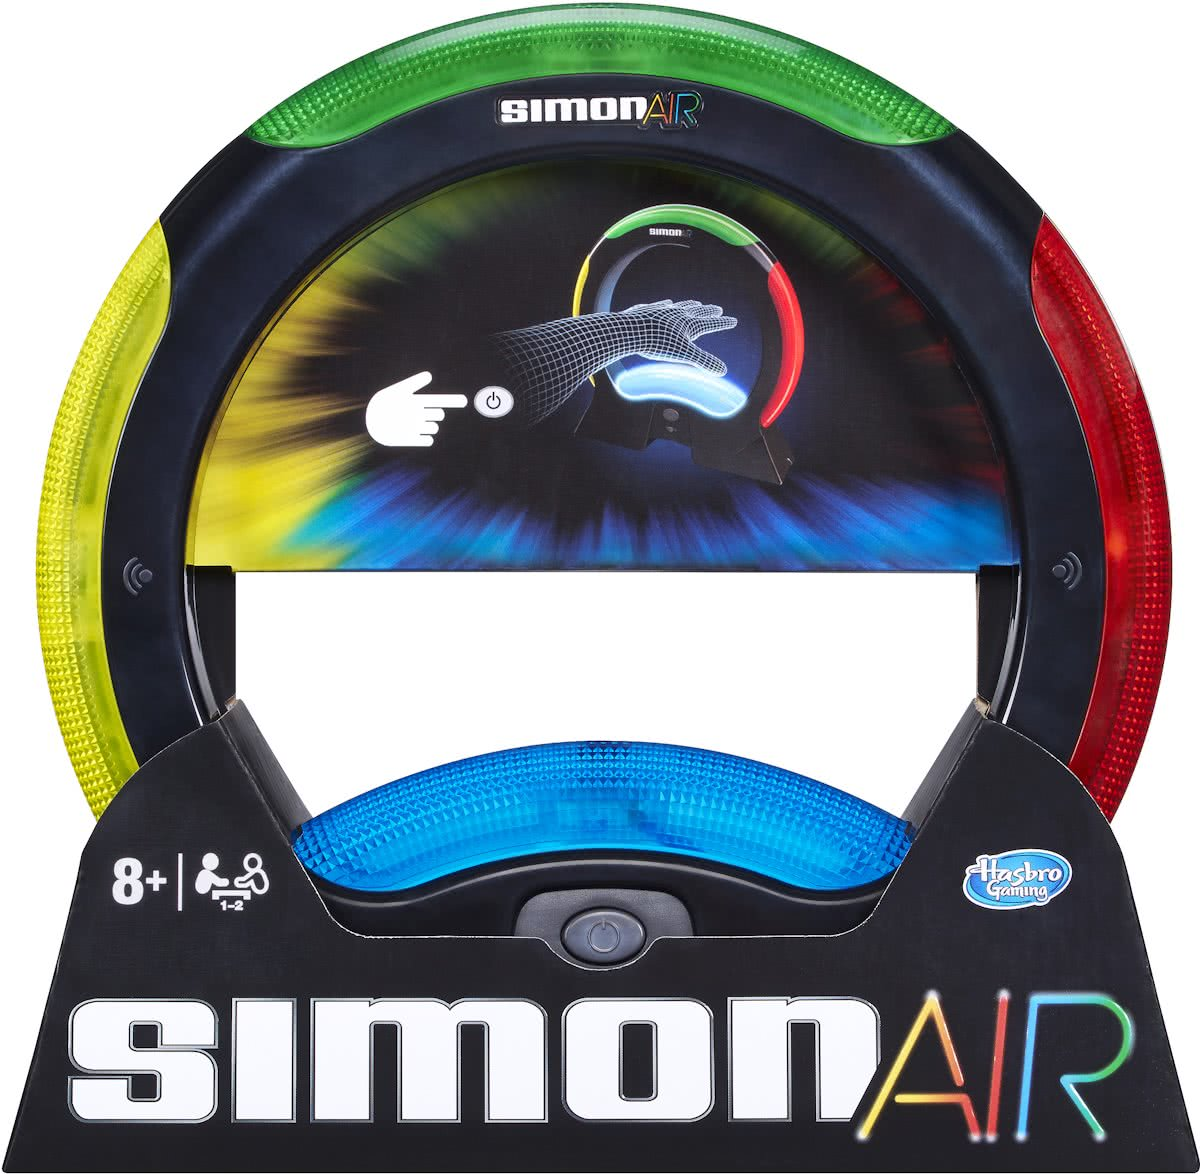 Simon Air - Actiespel